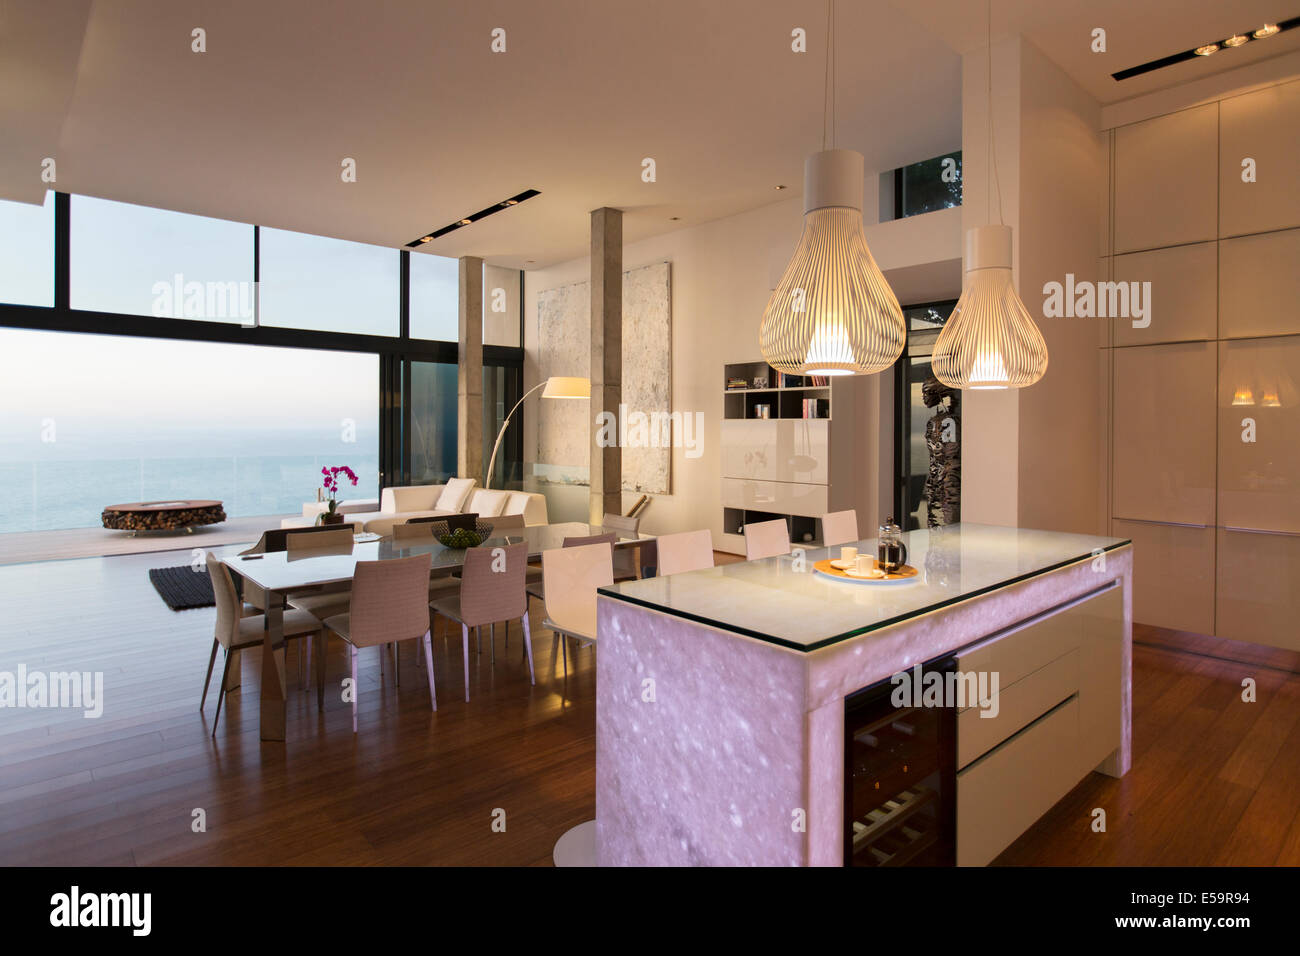 Modern Kitchen And Modern Kitchen And Living Area Overlooking Ocean Stock Photo